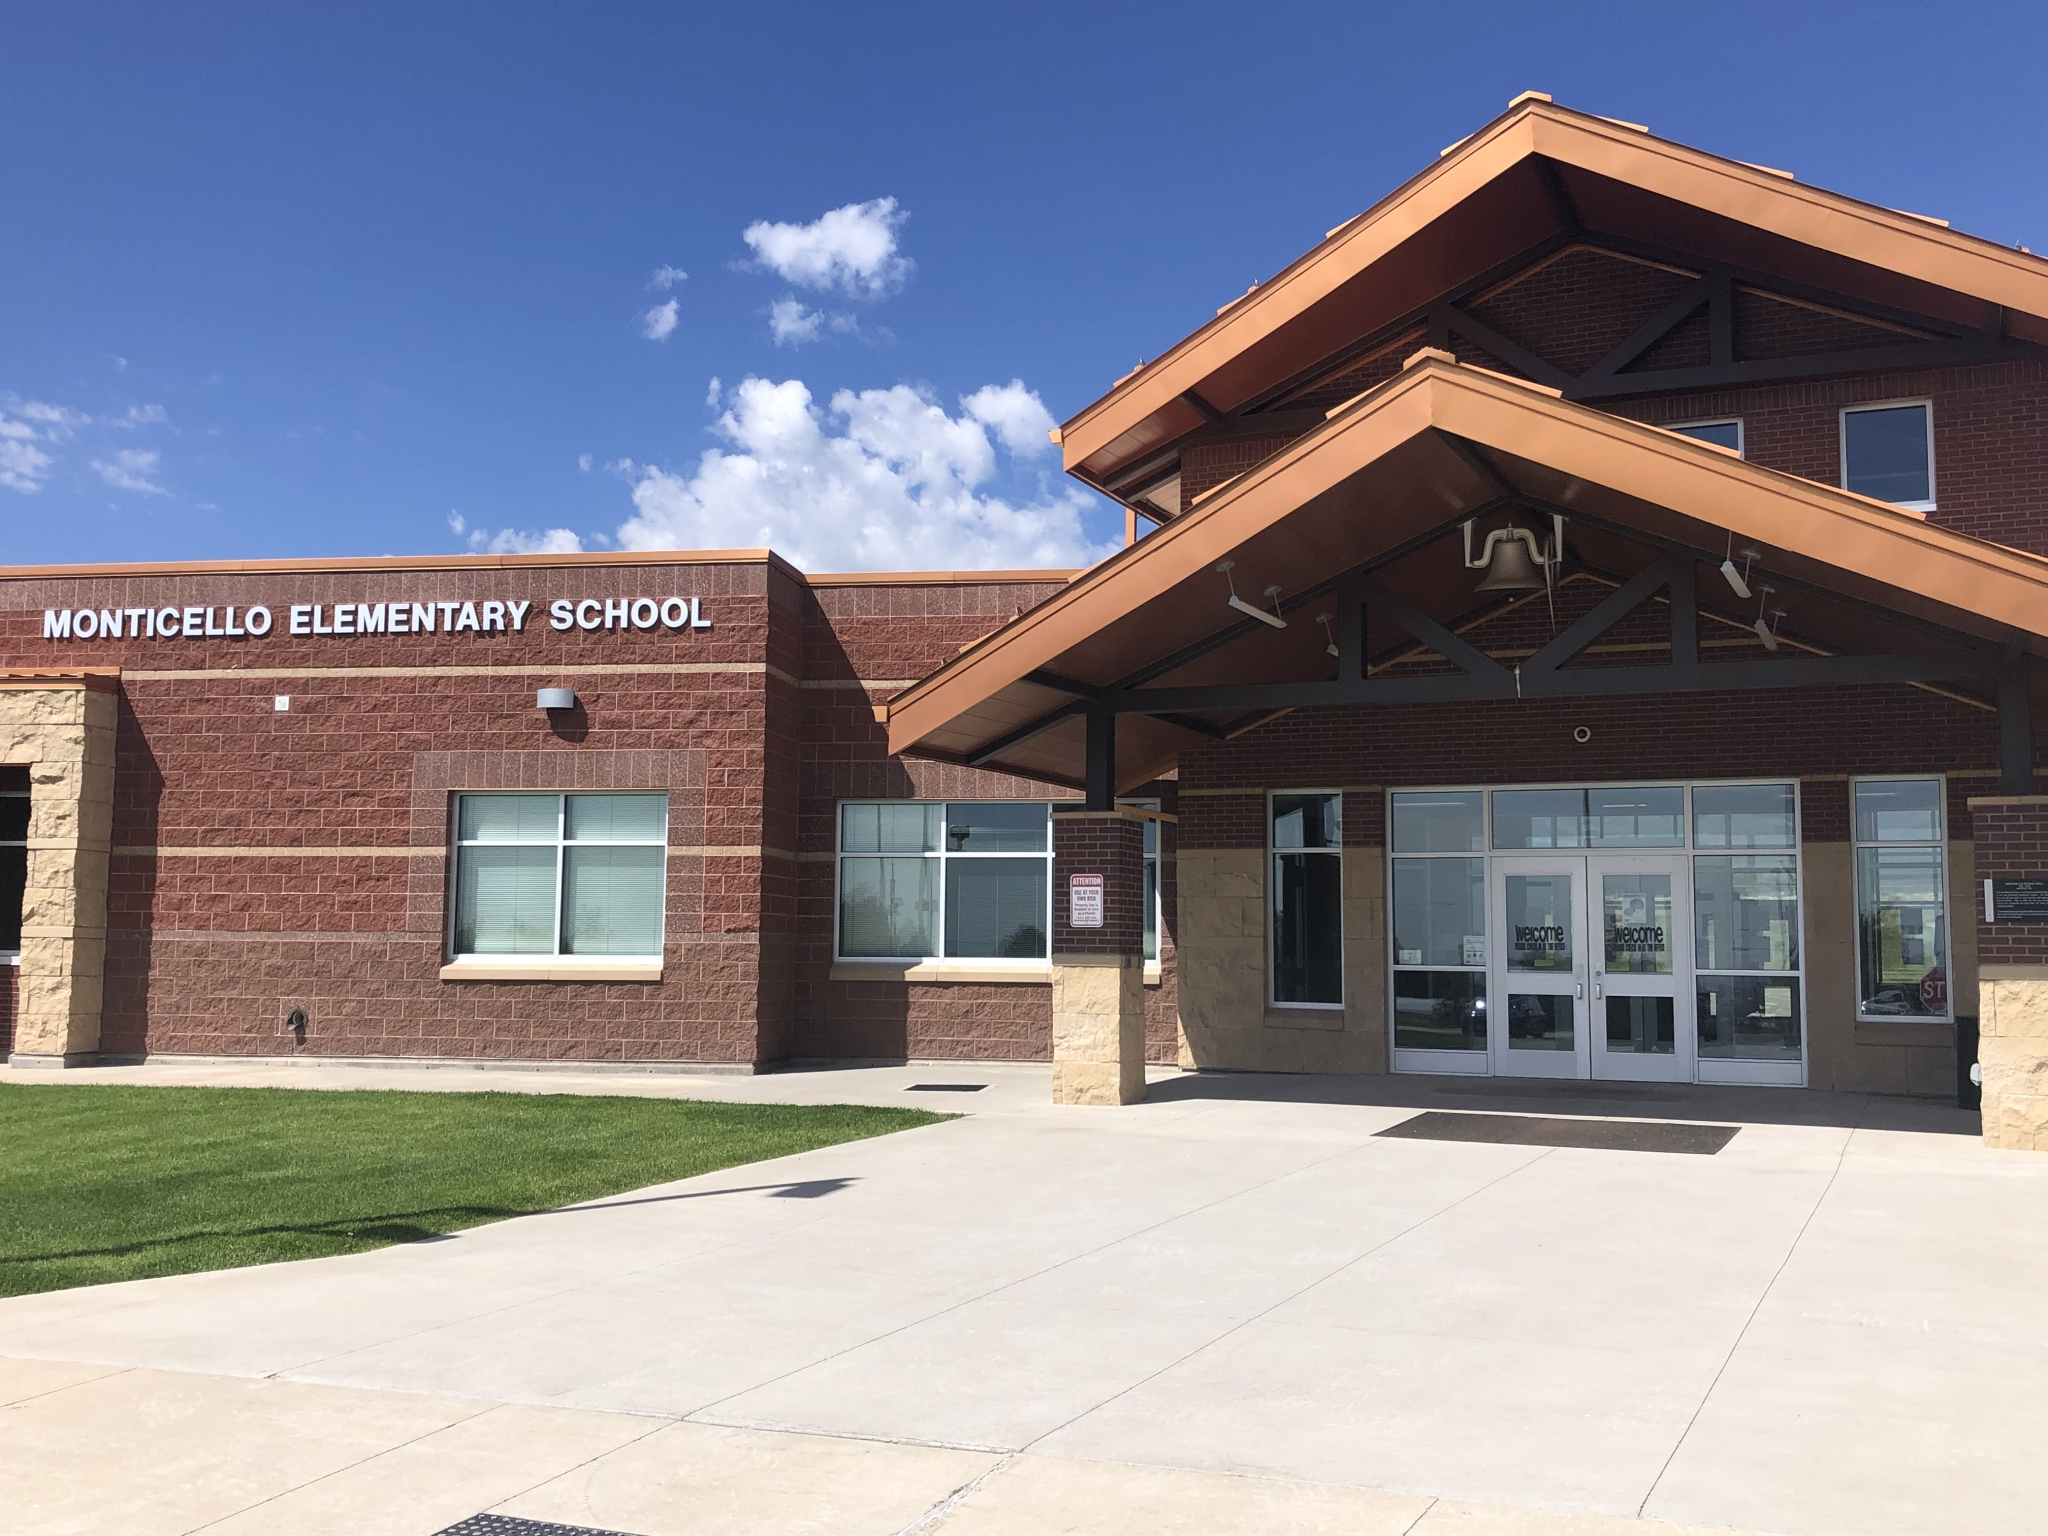 Schools throughout San Juan County, included pictured Monticello Elementary, will delay their start by two days